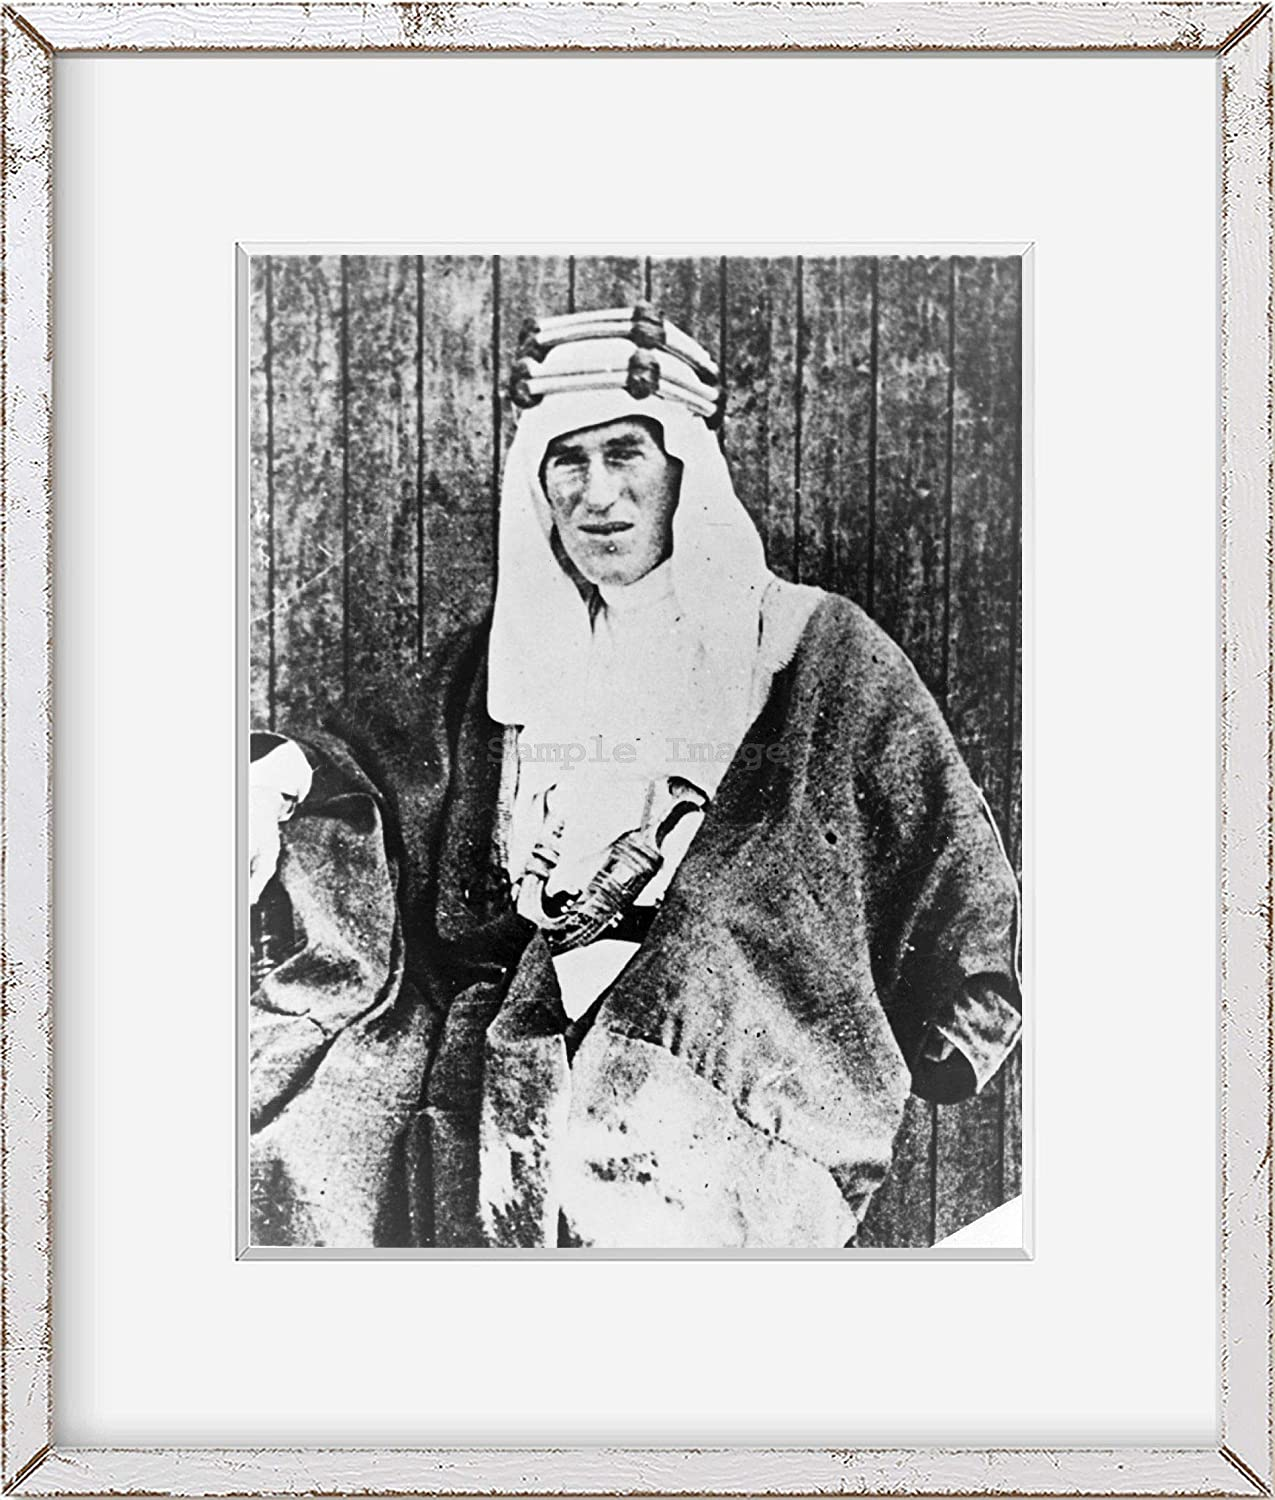 T.E INFINITE PHOTOGRAPHS Photo Lawrence,as Lawrence of Arabia,Thomas Edward Lawrence,British Army Officer